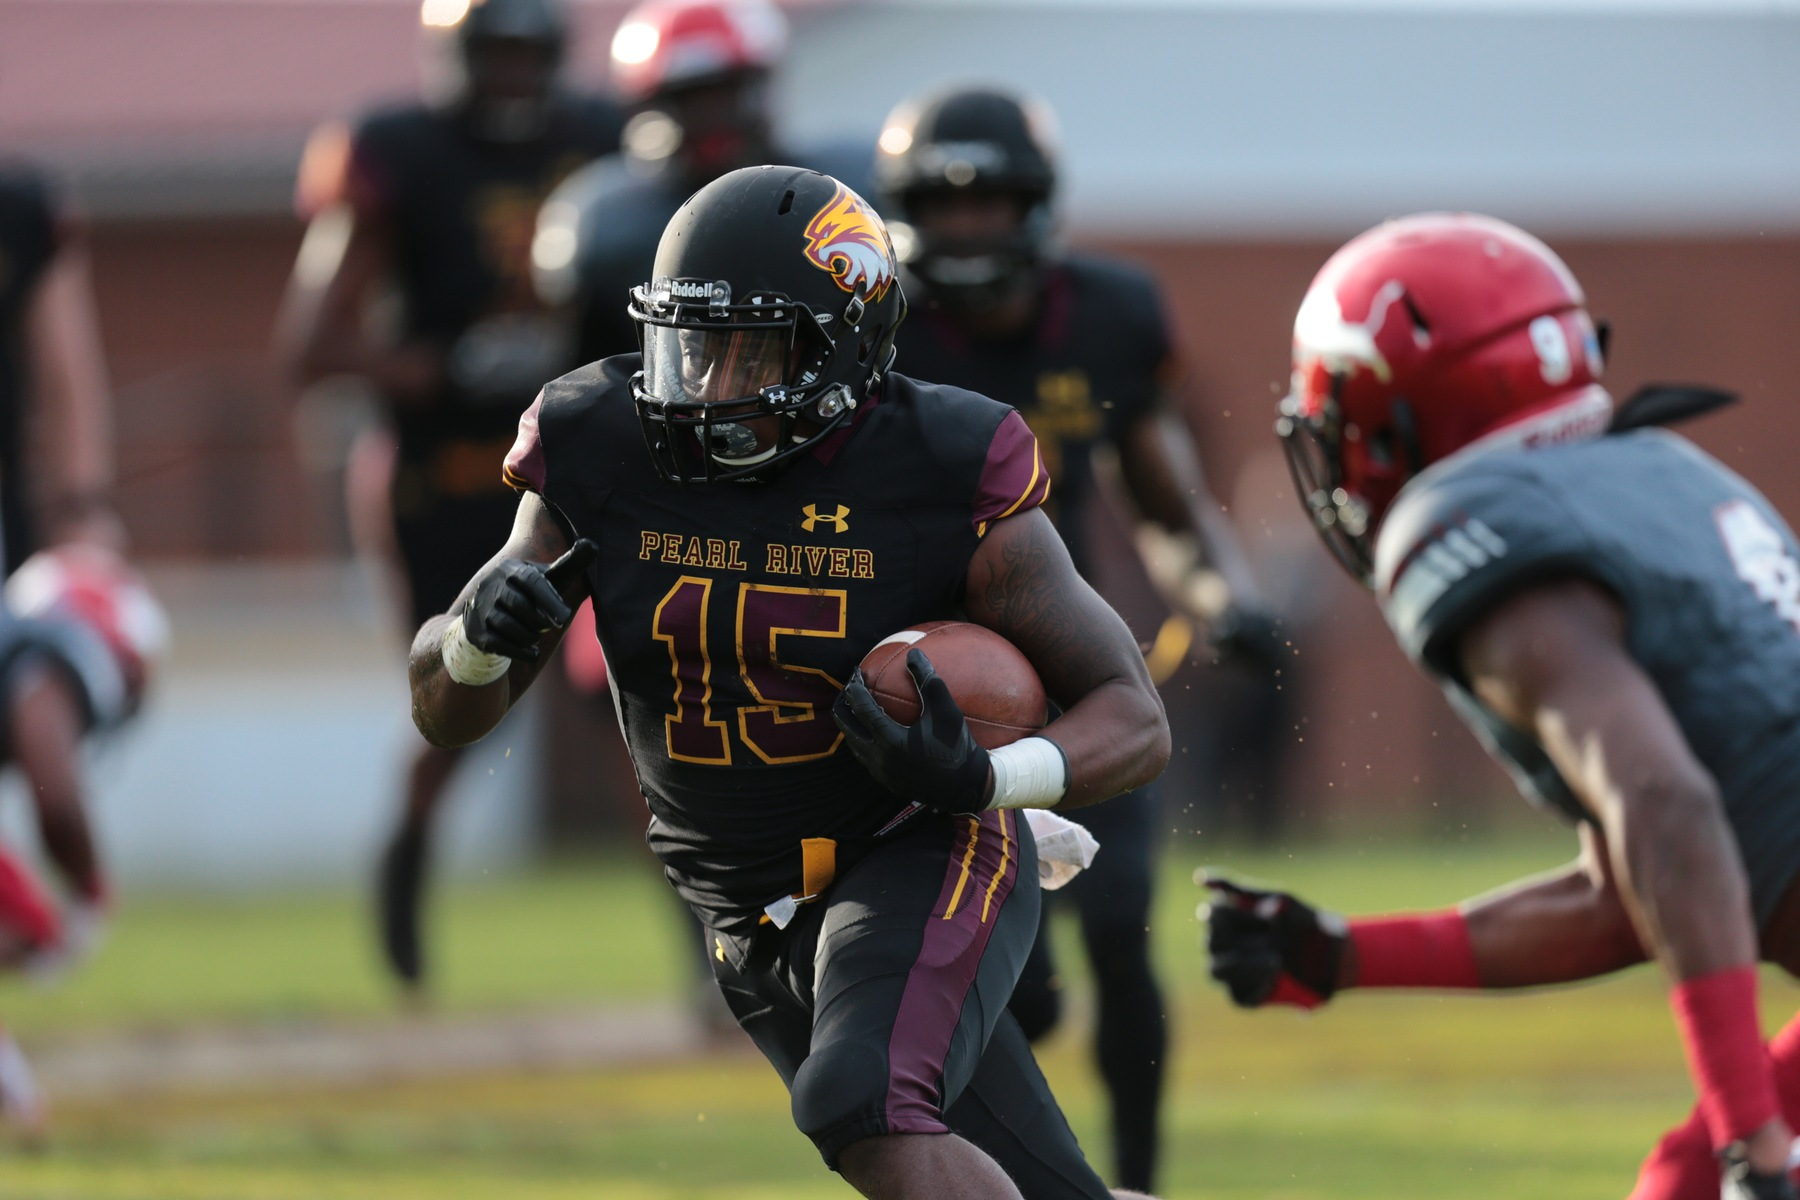 Pearl River Community College hosted East Mississippi Community College on Thursday, Sept. 6, 2018, at Dobie Holden Stadium. EMCC won 59-10. (JUCOWEEKLY.ORG)